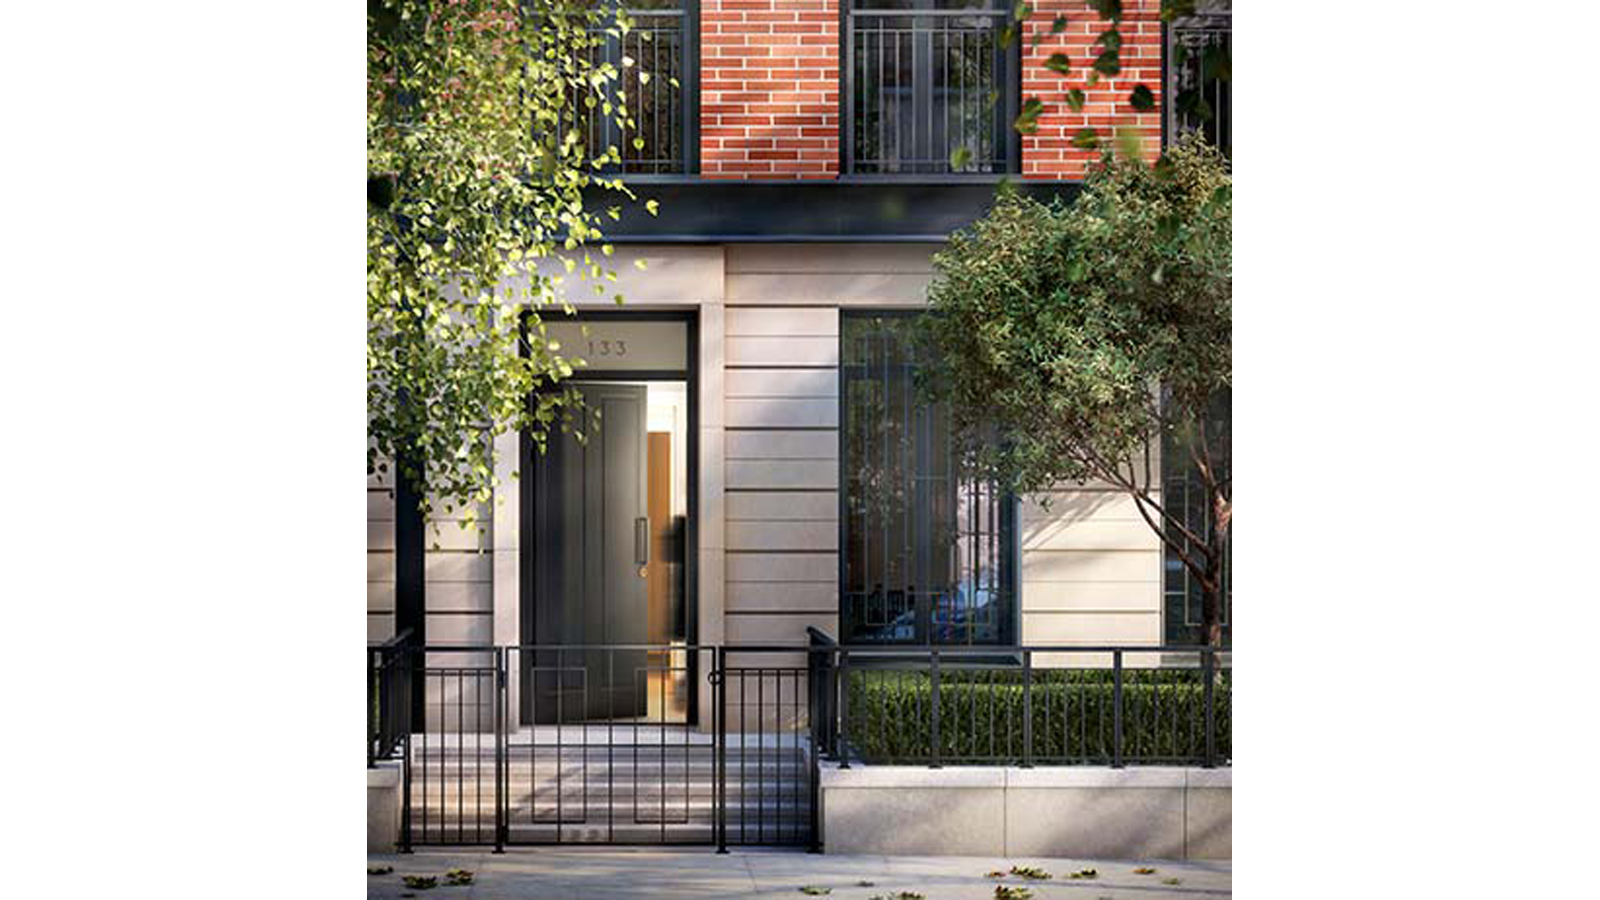 The Greenwich Lane Townhouses, 133 West 11th Street